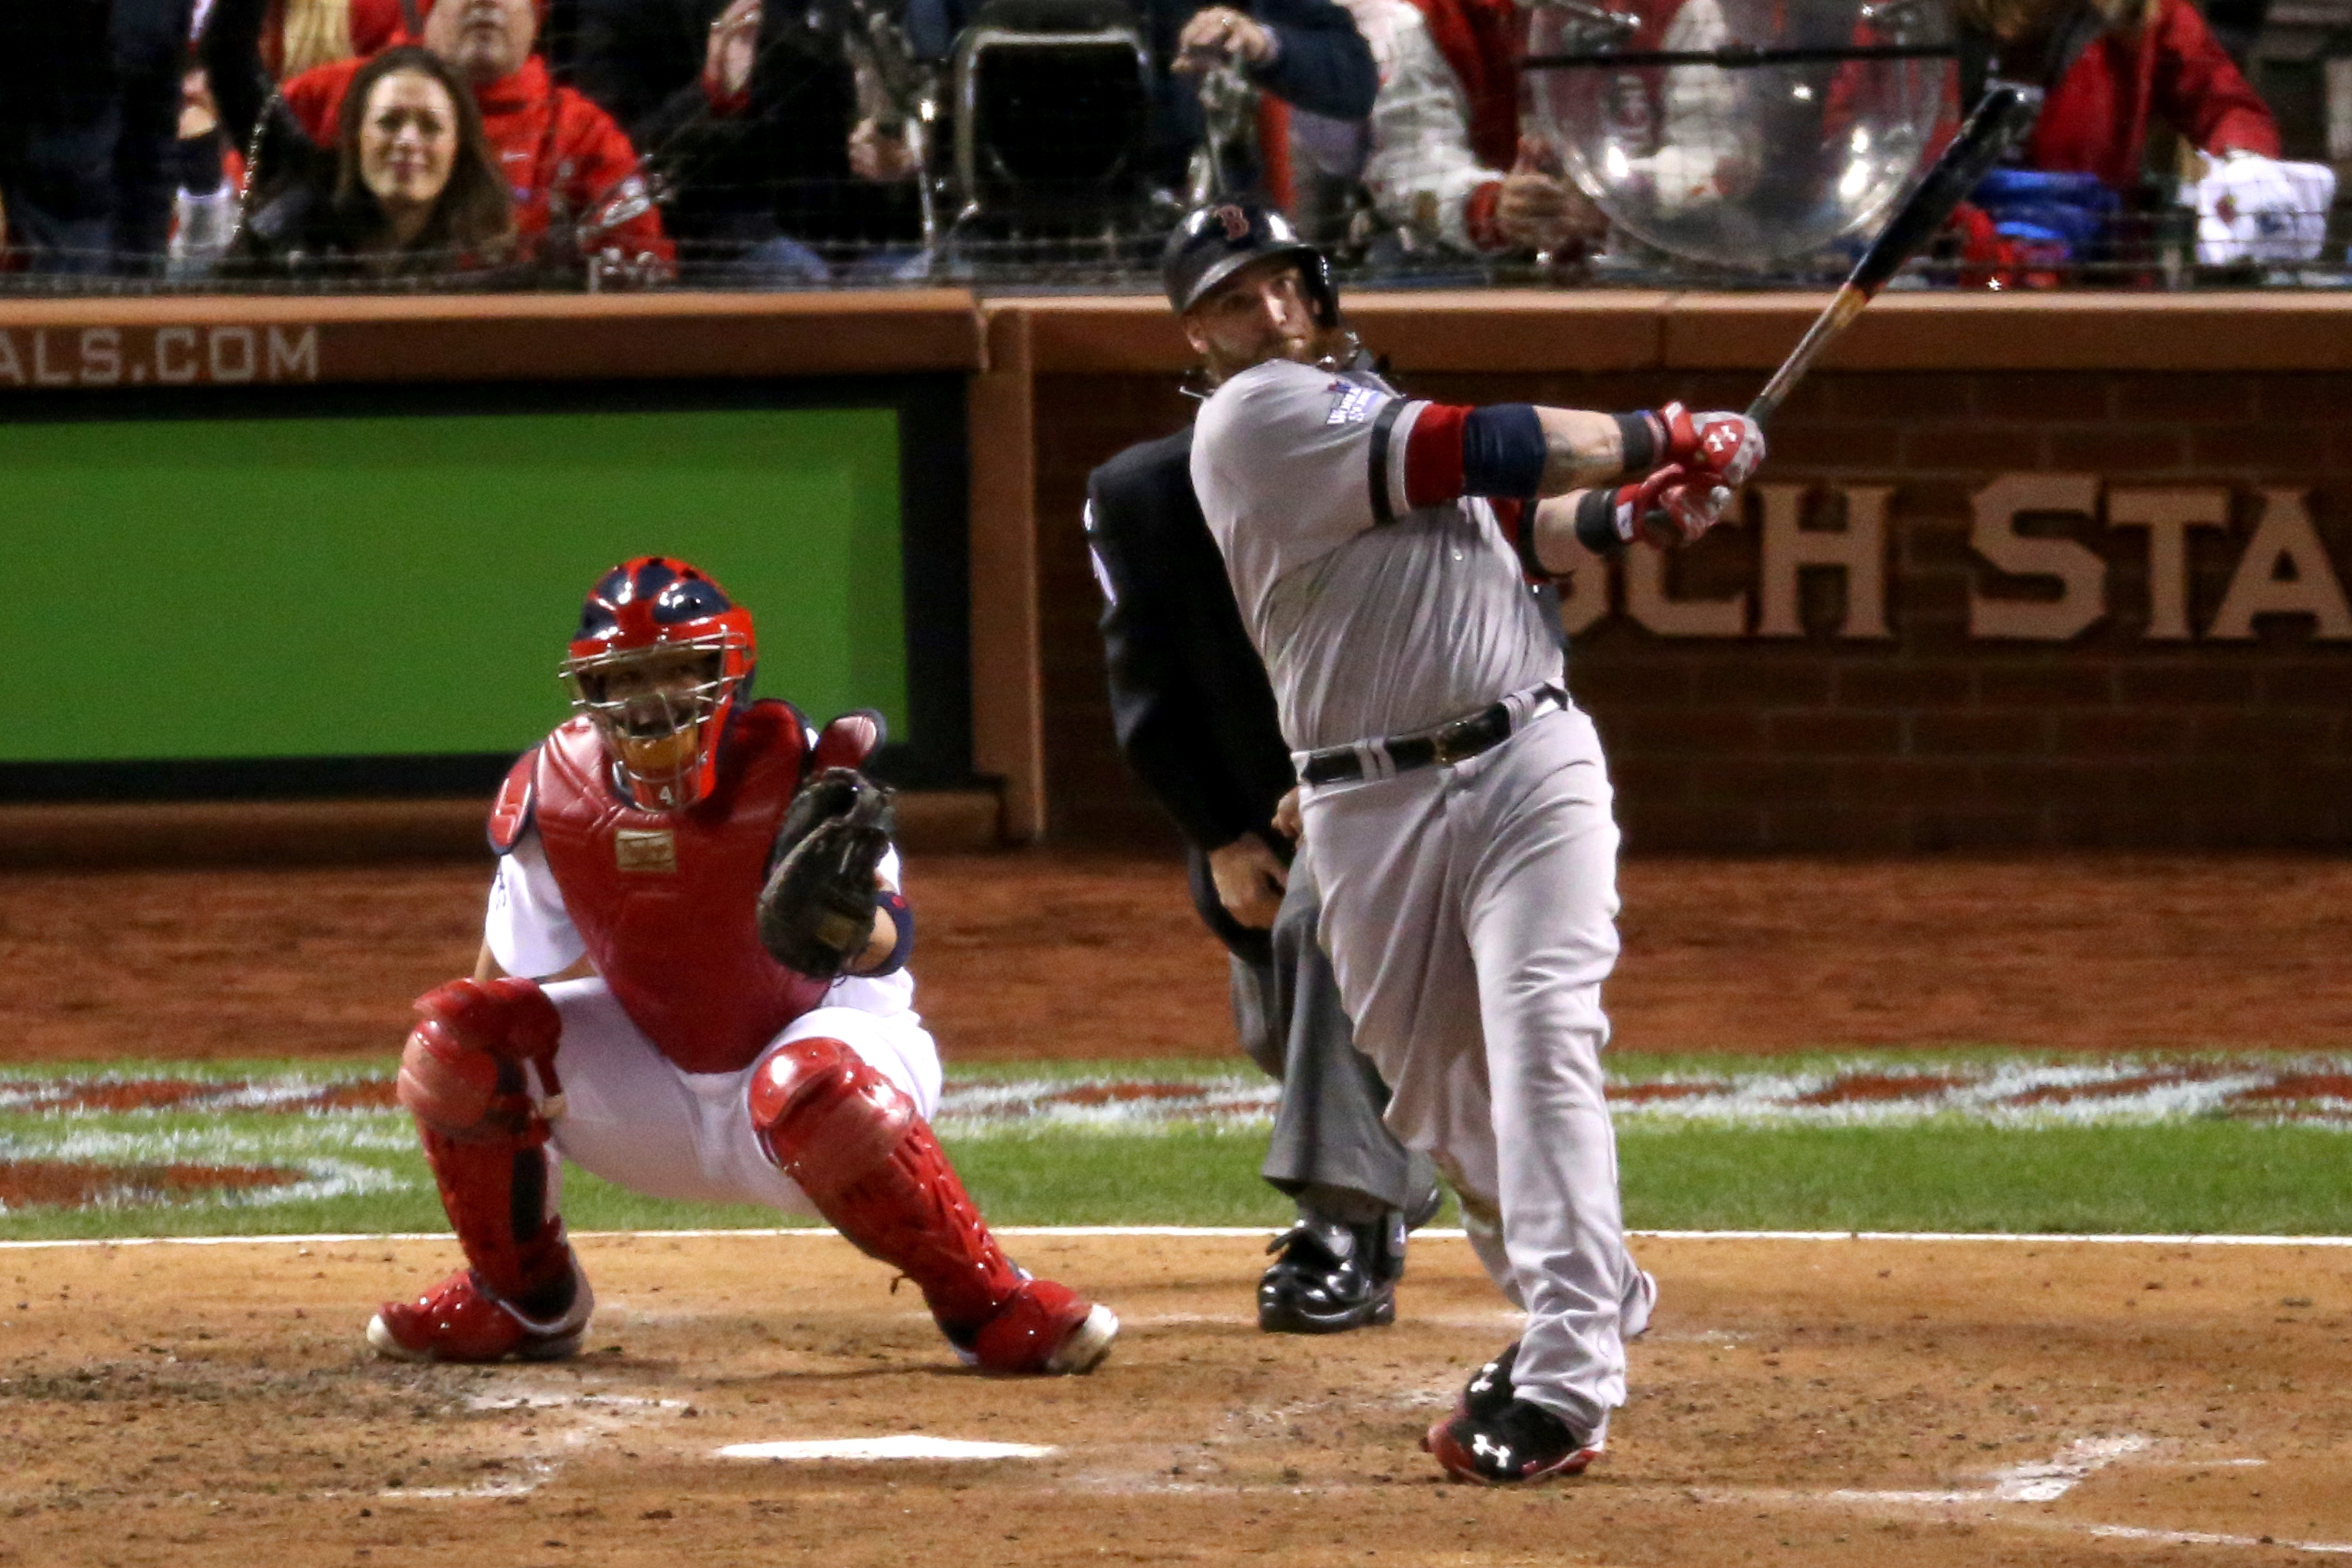 Red Sox vs. Cardinals, 2013 World Series Game 4 final score: Jonny Gomes, Boston even series with 4-2 win